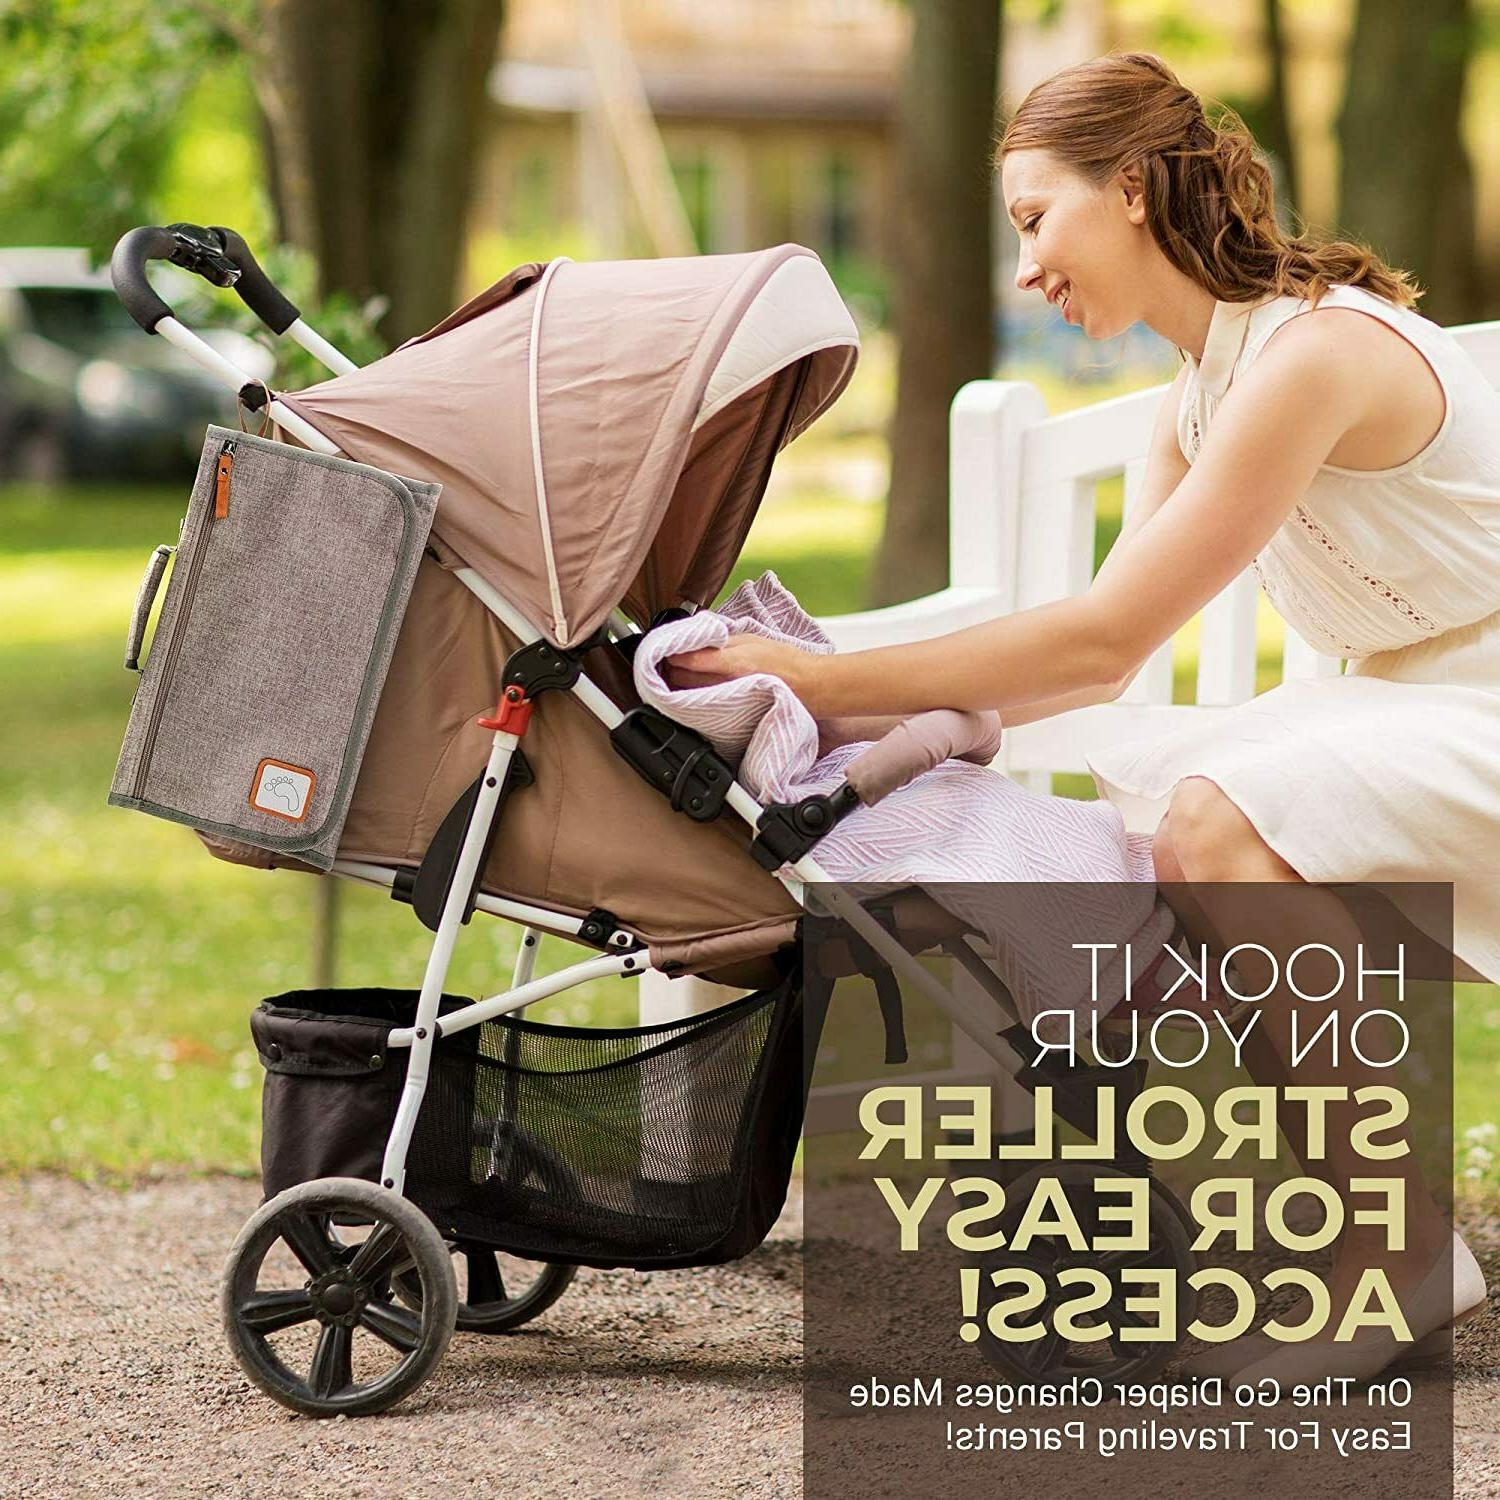 Portable Diaper Changing - Baby - Travel Stati...